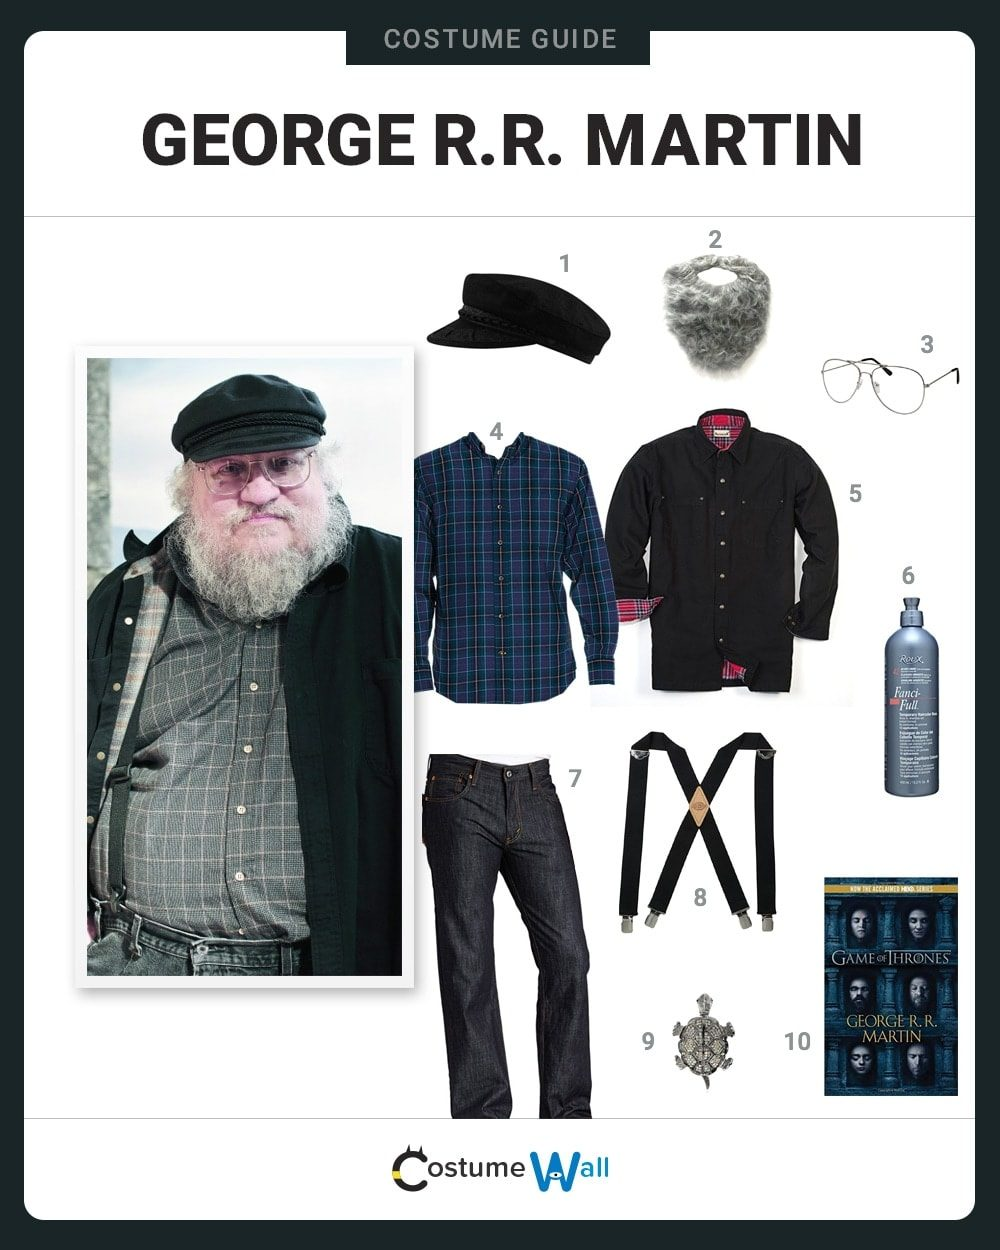 George R. R. Martin Costume Guide